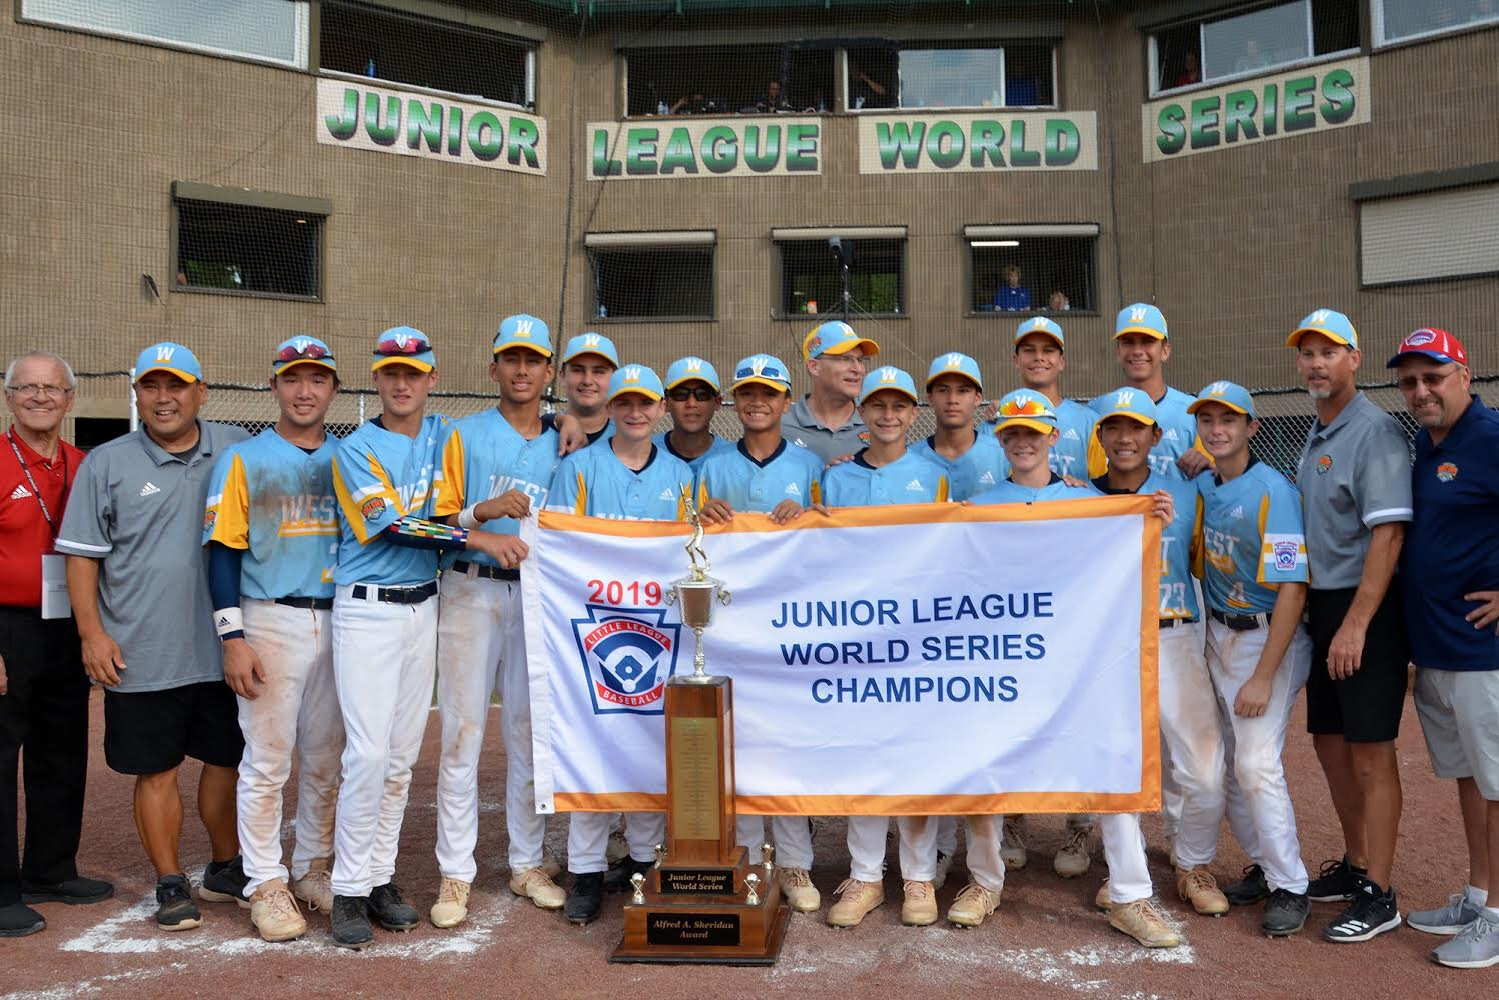 This is a photo of the Golden Hill Little League. Tyler Simkins is in the middle with blue sunglasses.